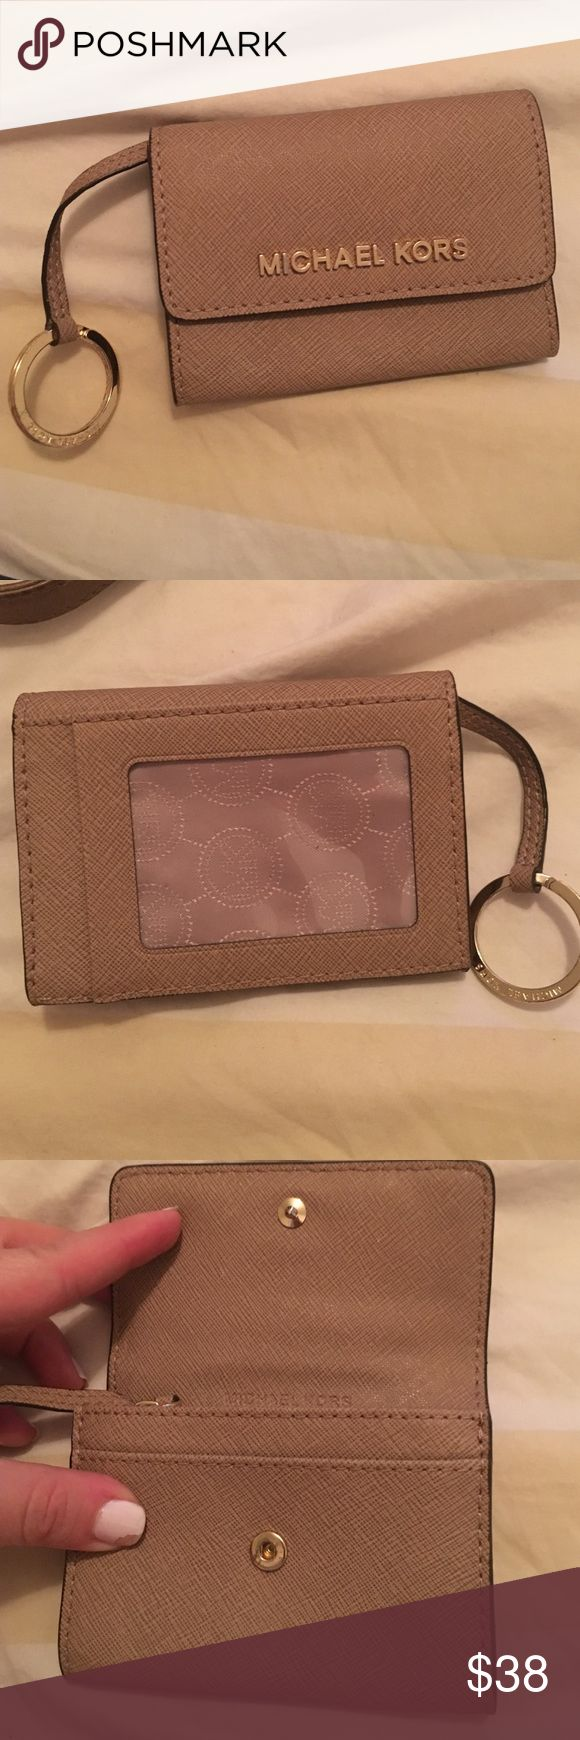 Michael Kors jet set travel coin purse Wristlet Dark khaki and in perfect condition. Hardly used. Perfect for key chain and wallet combo MICHAEL Michael Kors Bags Clutches & Wristlets